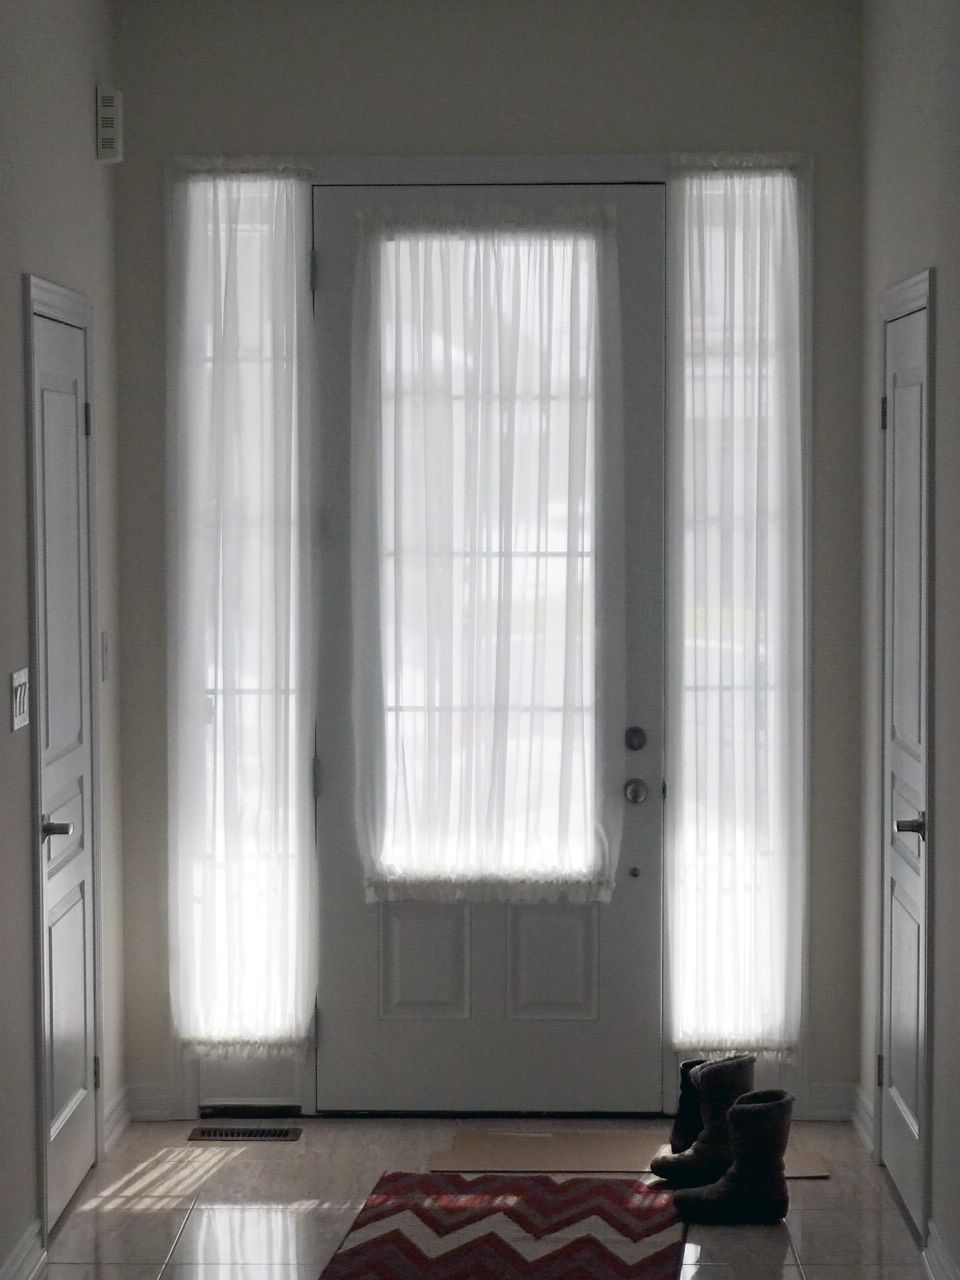 Front door sidelight curtains - Sheers For Both The Front Door Glass And The Two Sidelight Windows Provides A Consistent Look